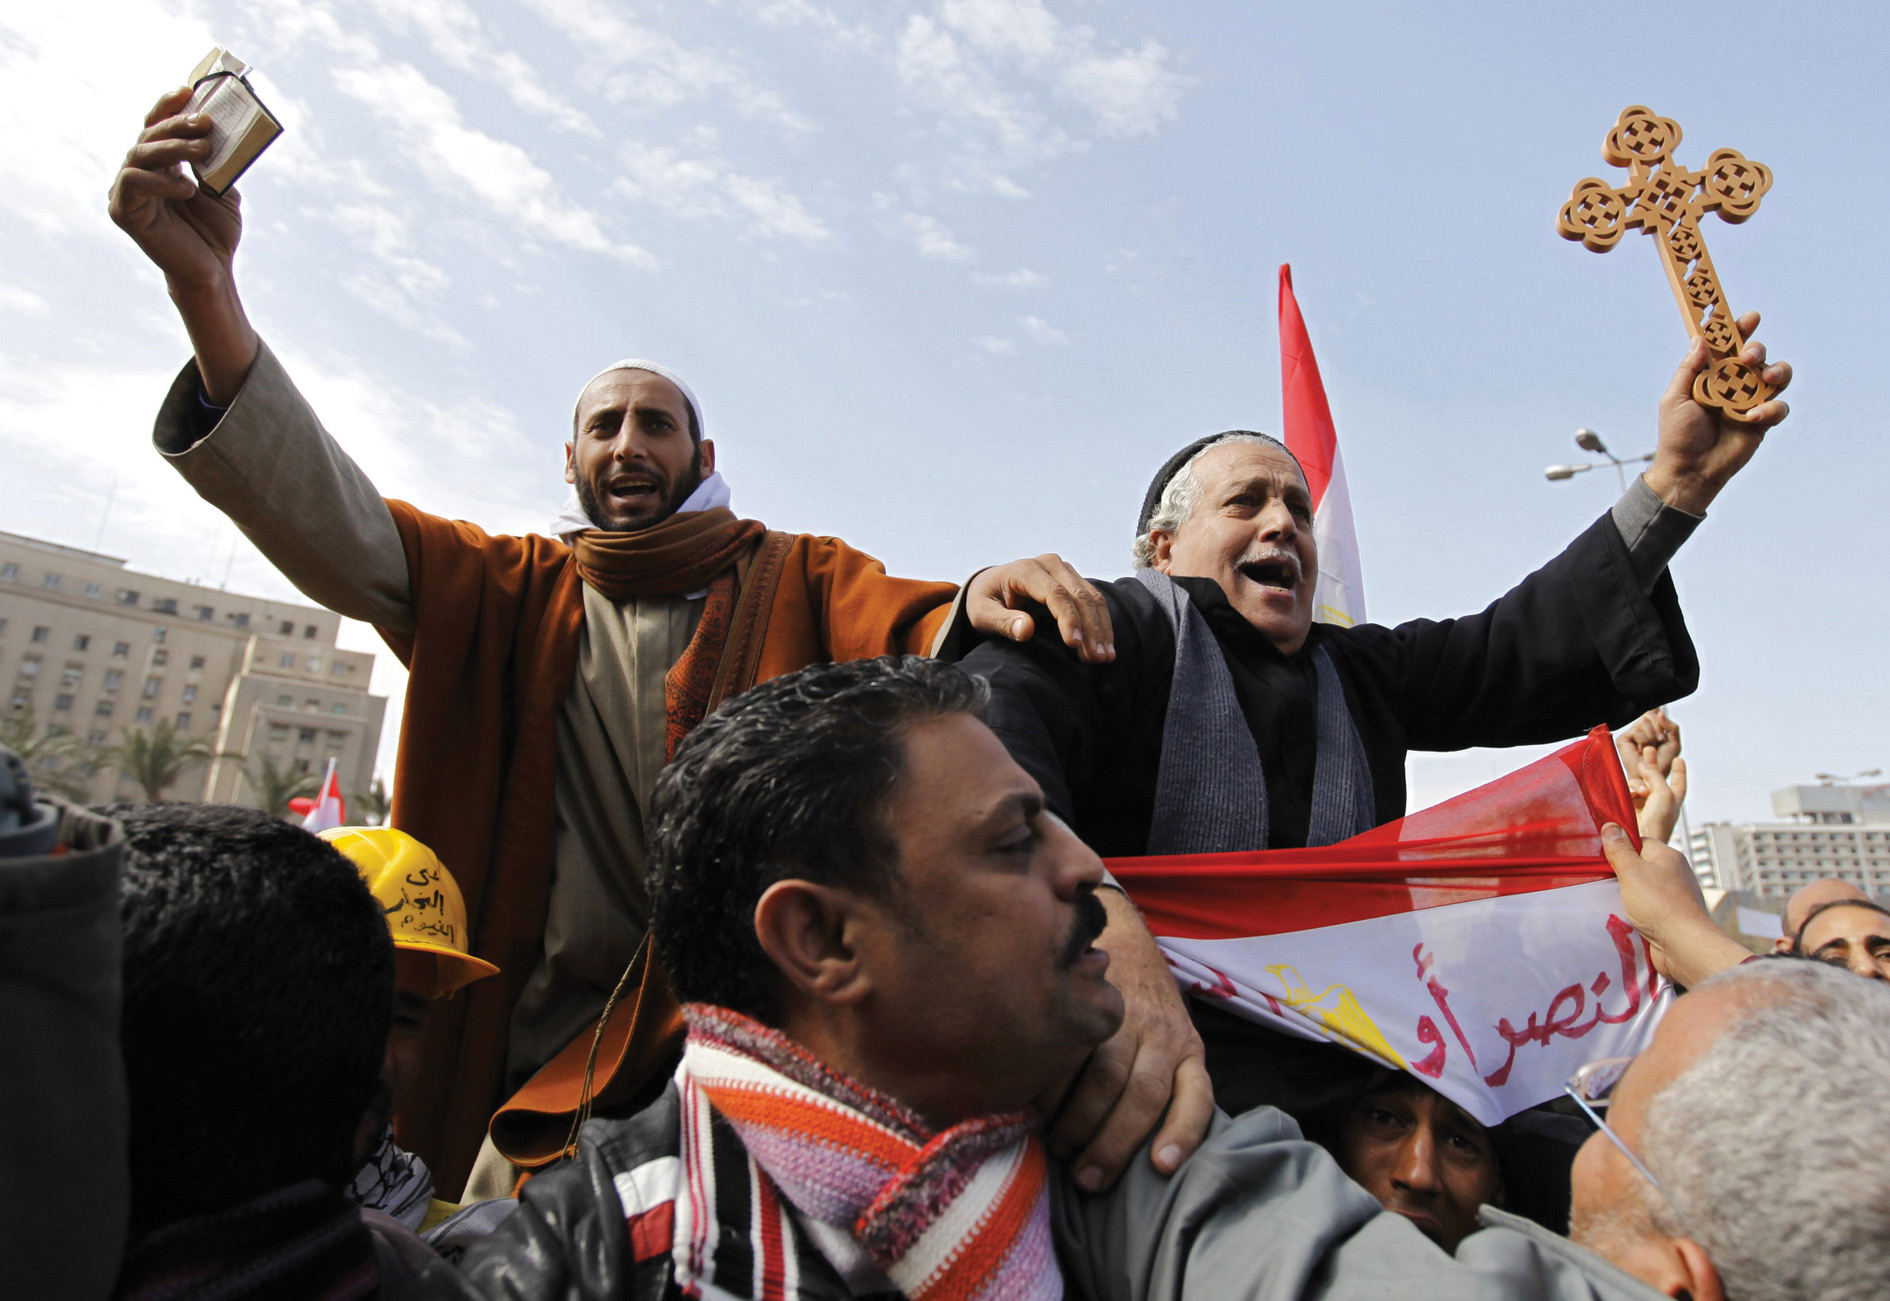 A Muslim holding the Koran (top L) and a Coptic Christian holding a cross in Cairo's Tahrir Square during the period of interfaith unity on February 6, 2011. Credit: Dylan Martinez